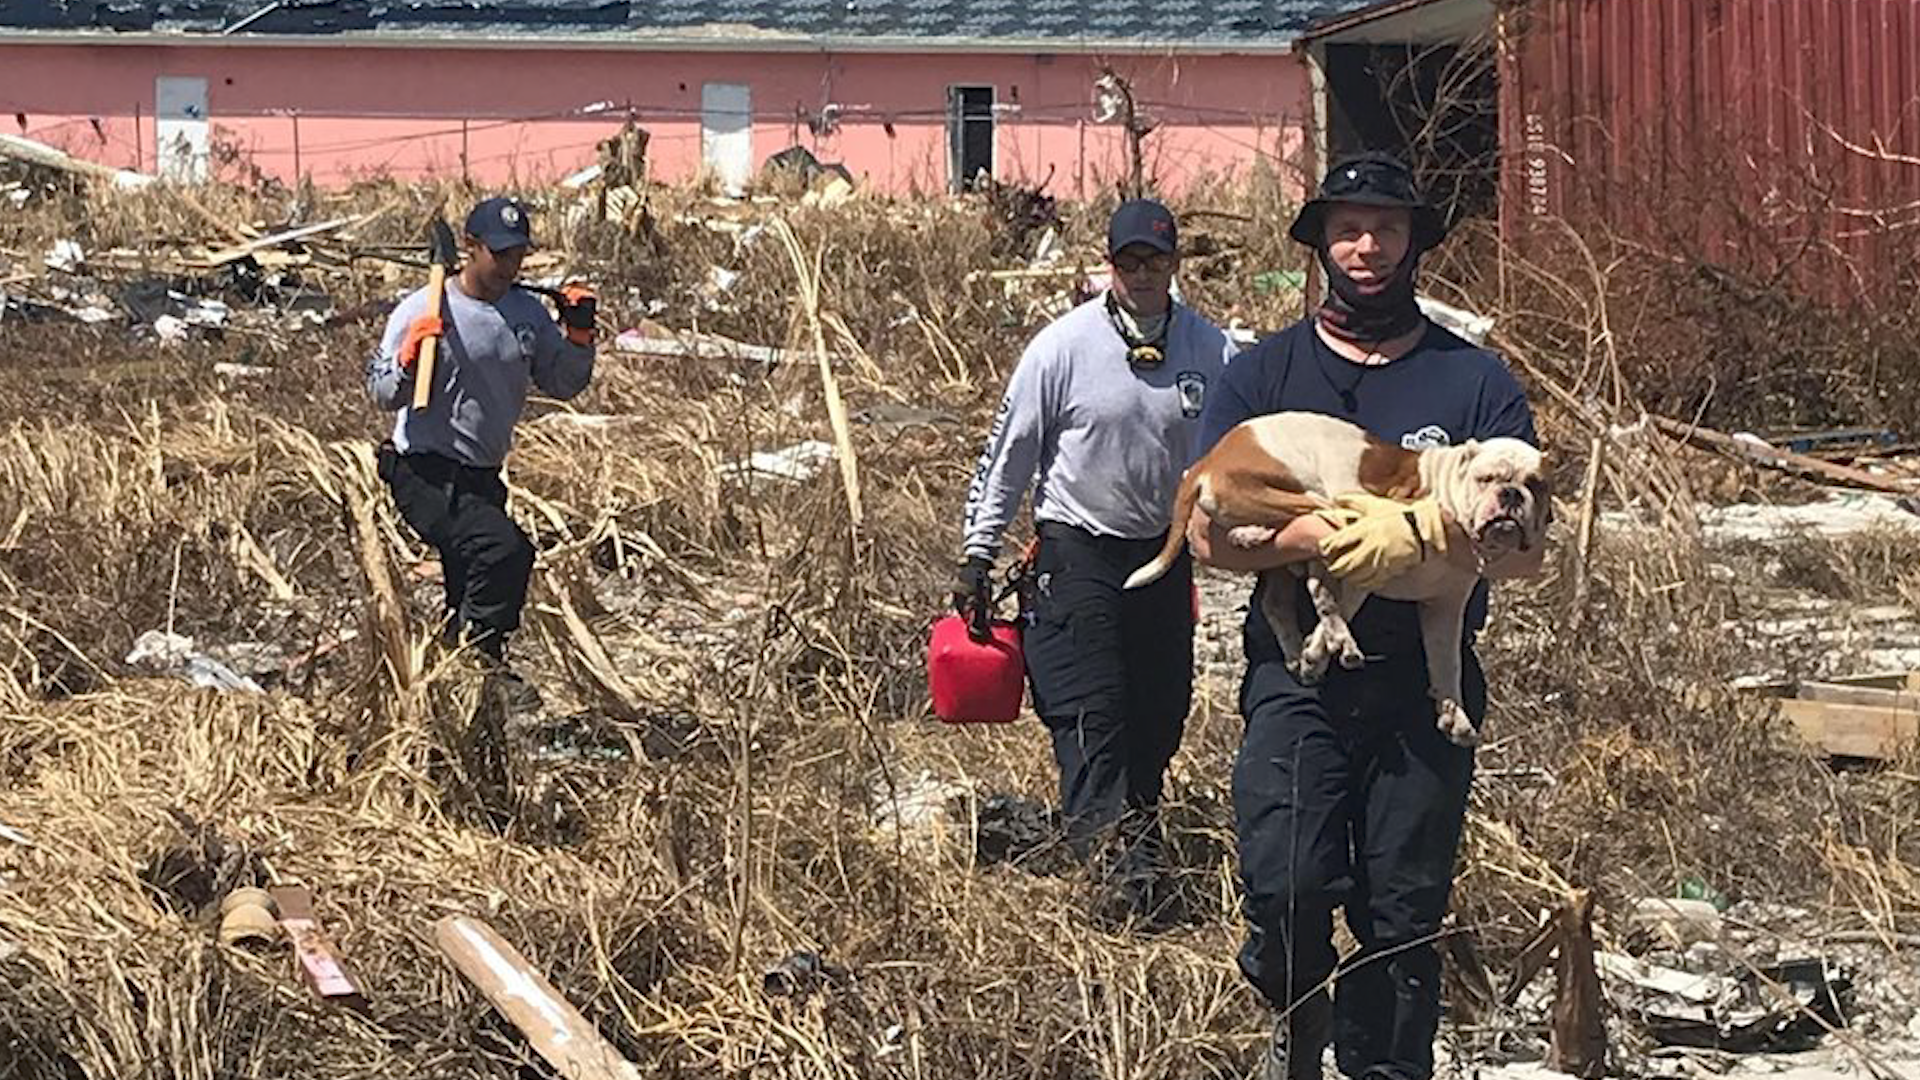 Firefighters rescue bulldog from collapsed building